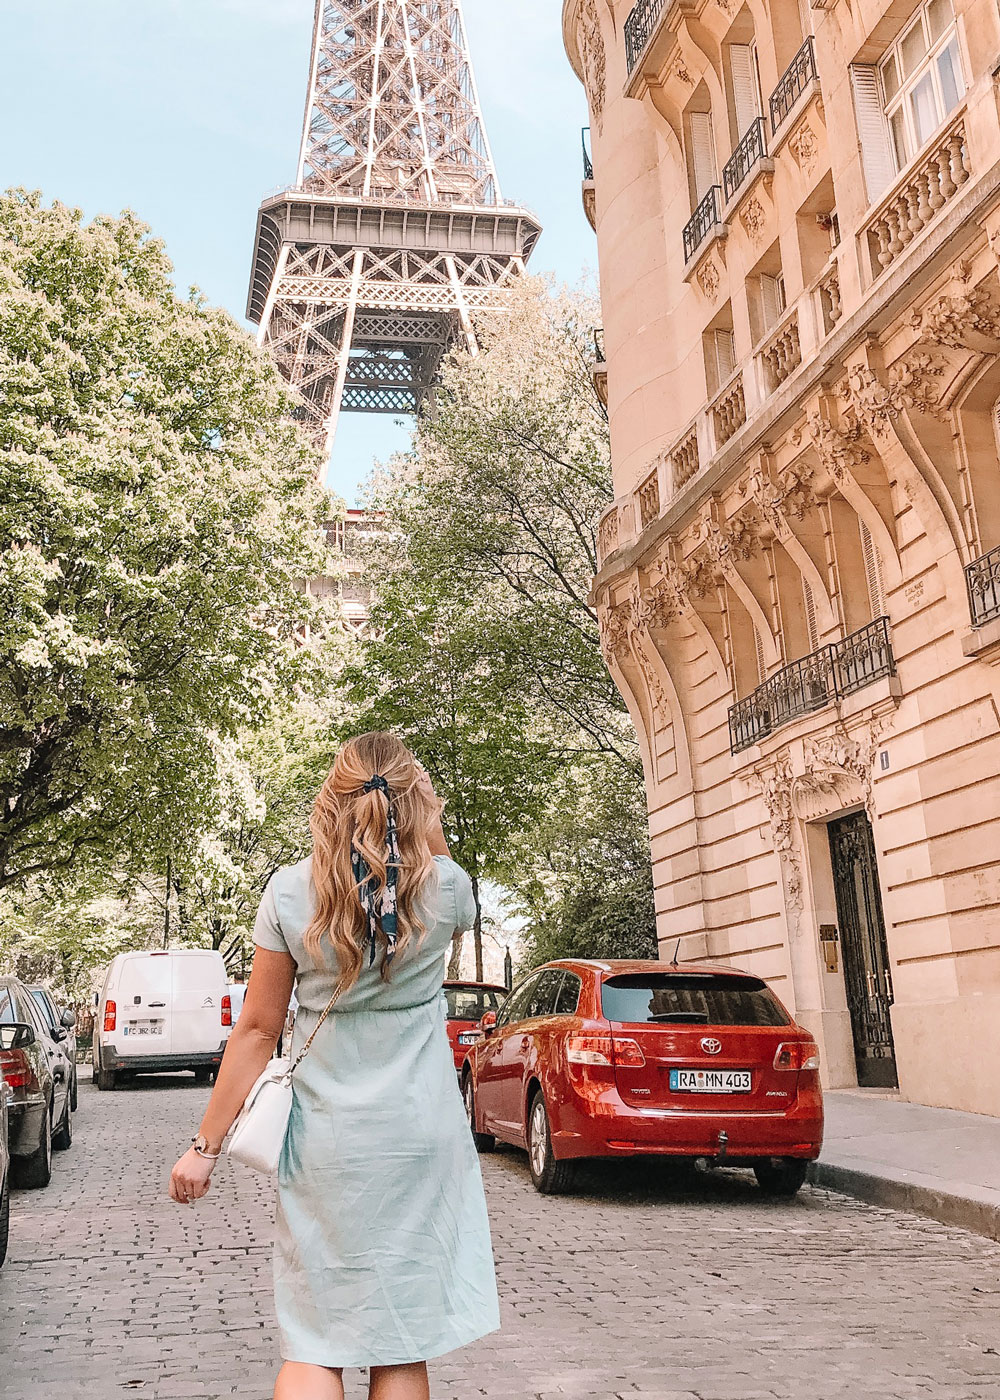 Best Eiffel Tower Instagram Spots